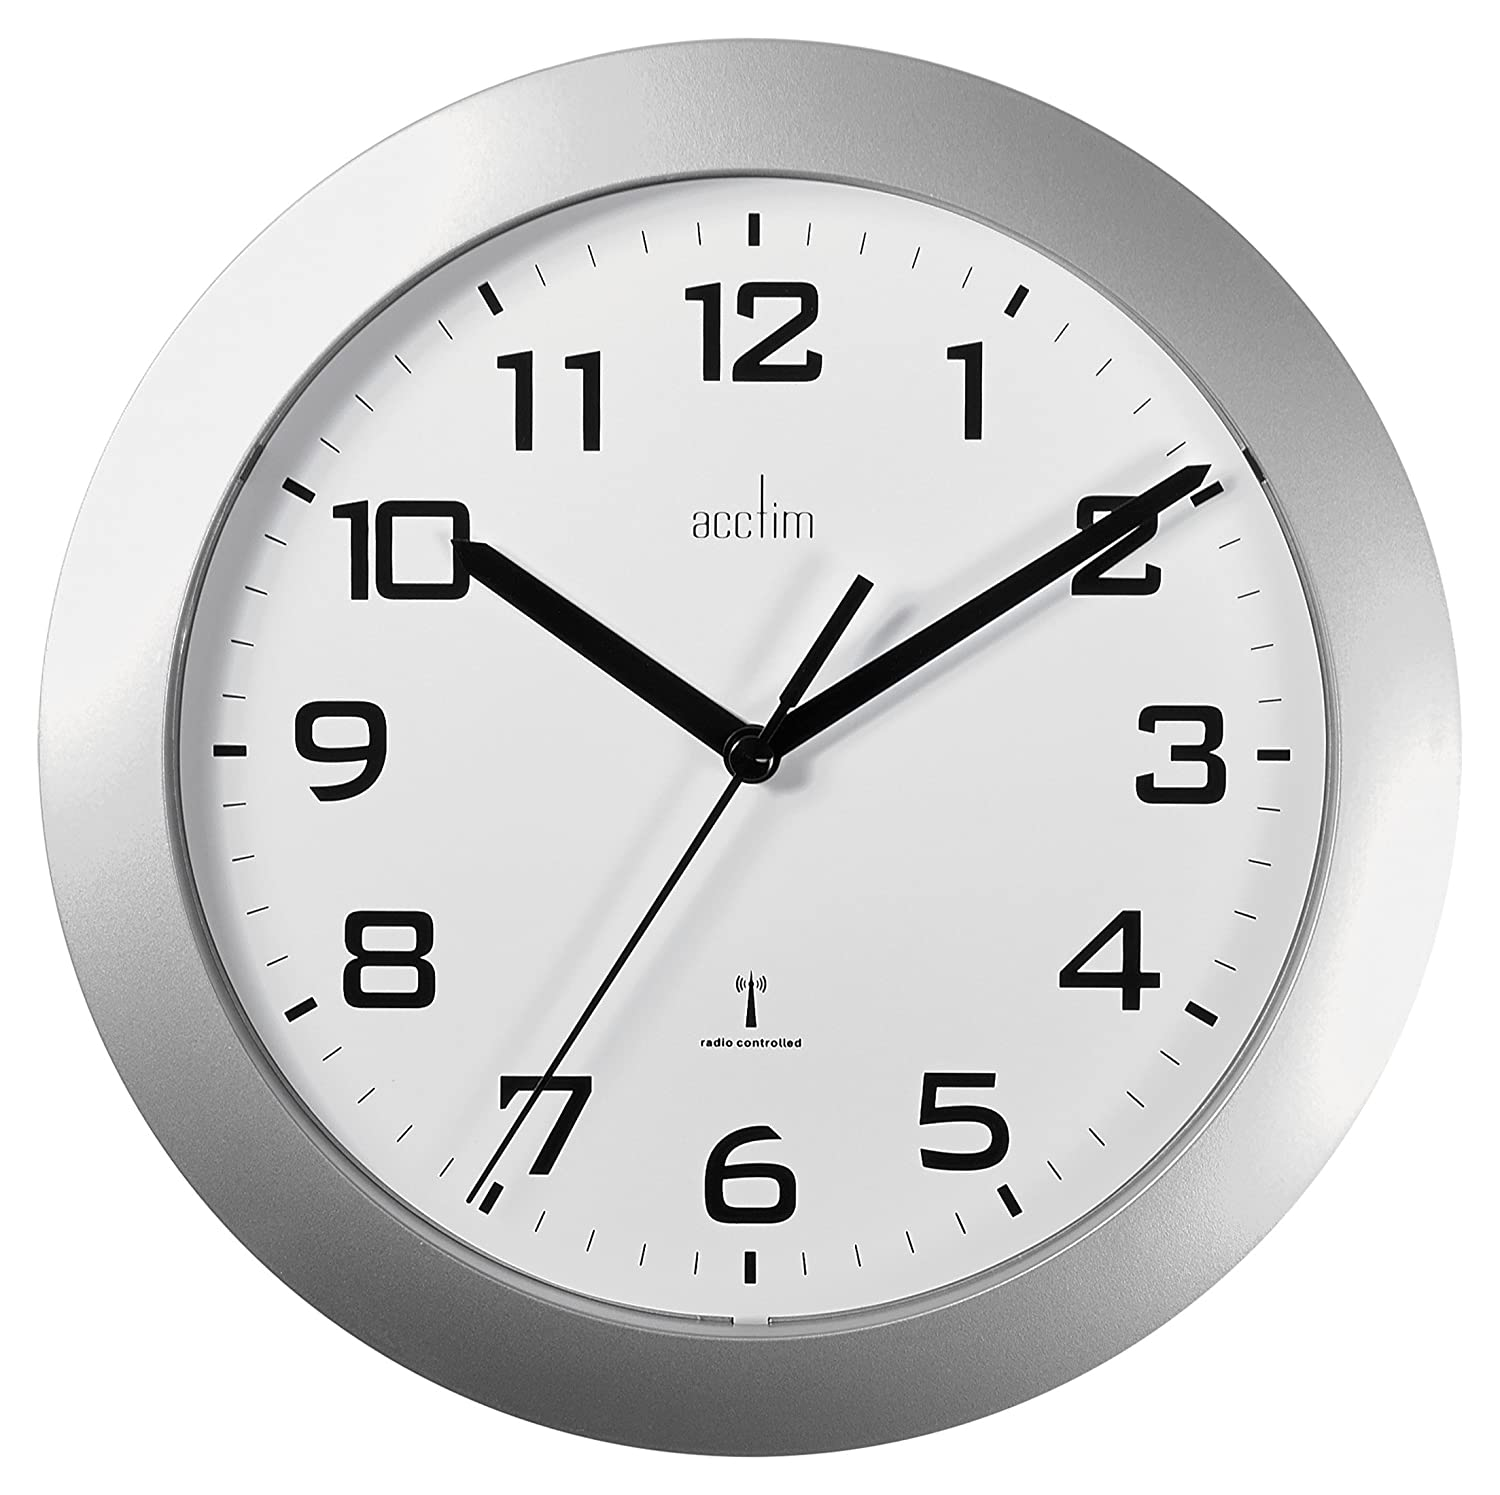 office wall clocks large. Acctim 74367 Peron Radio Controlled Wall Clock, Silver: Amazon.co.uk: Kitchen \u0026 Home Office Clocks Large I